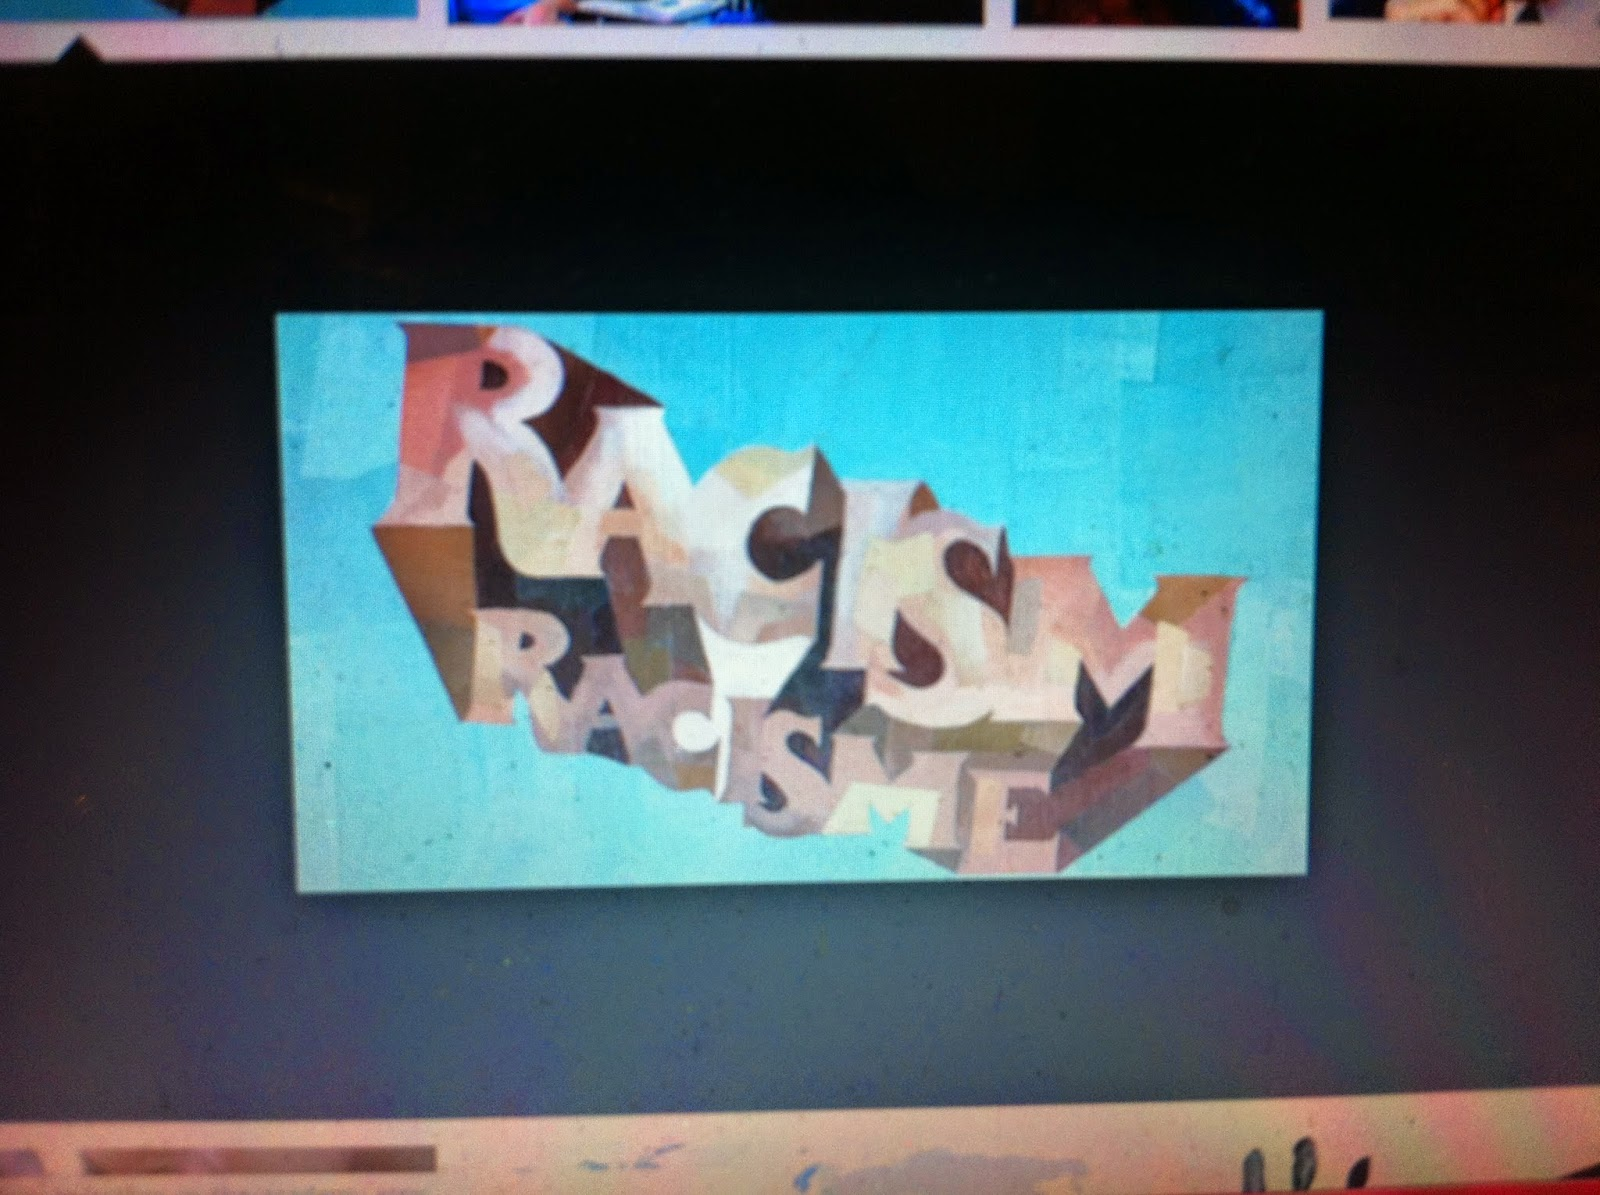 a history of racial discrimination A very brief history of racism - workers solidarity movement a quick look at the origins of racism in modern society from its roots in the justification of slavery any discussion of racism needs to examine the roots of racism in order to understand it and to struggle against it effectively.